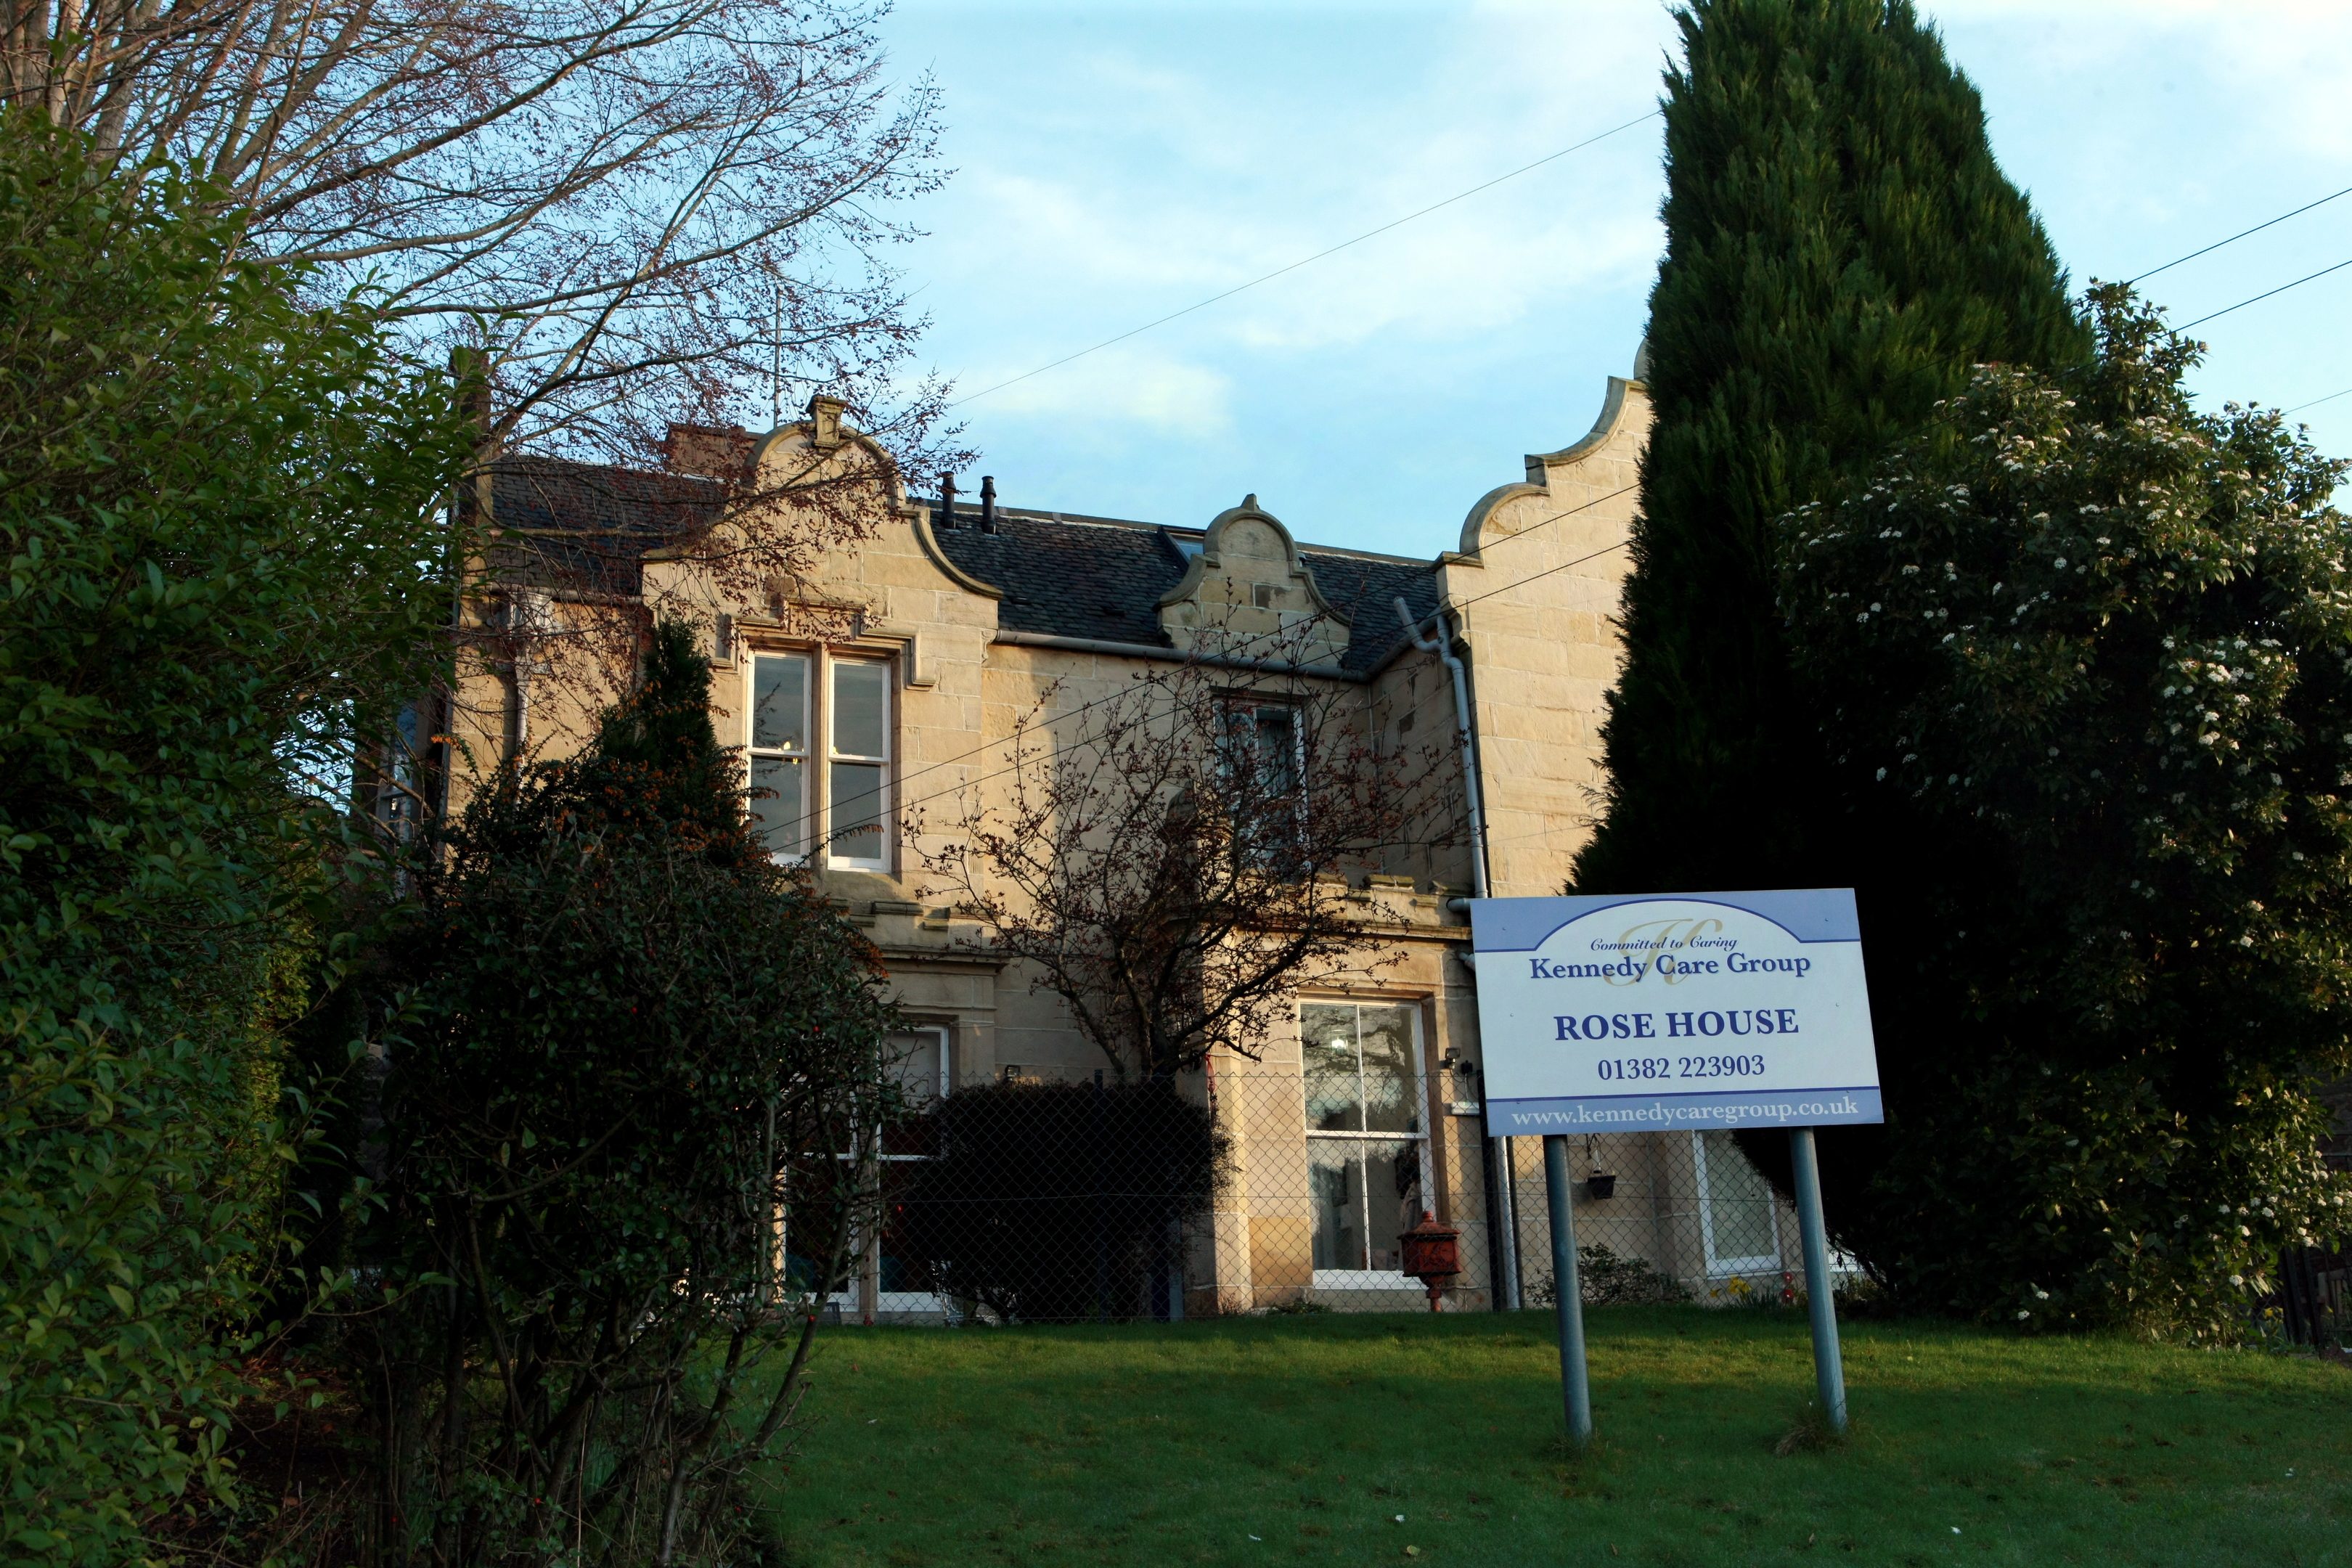 Rose House Care Home